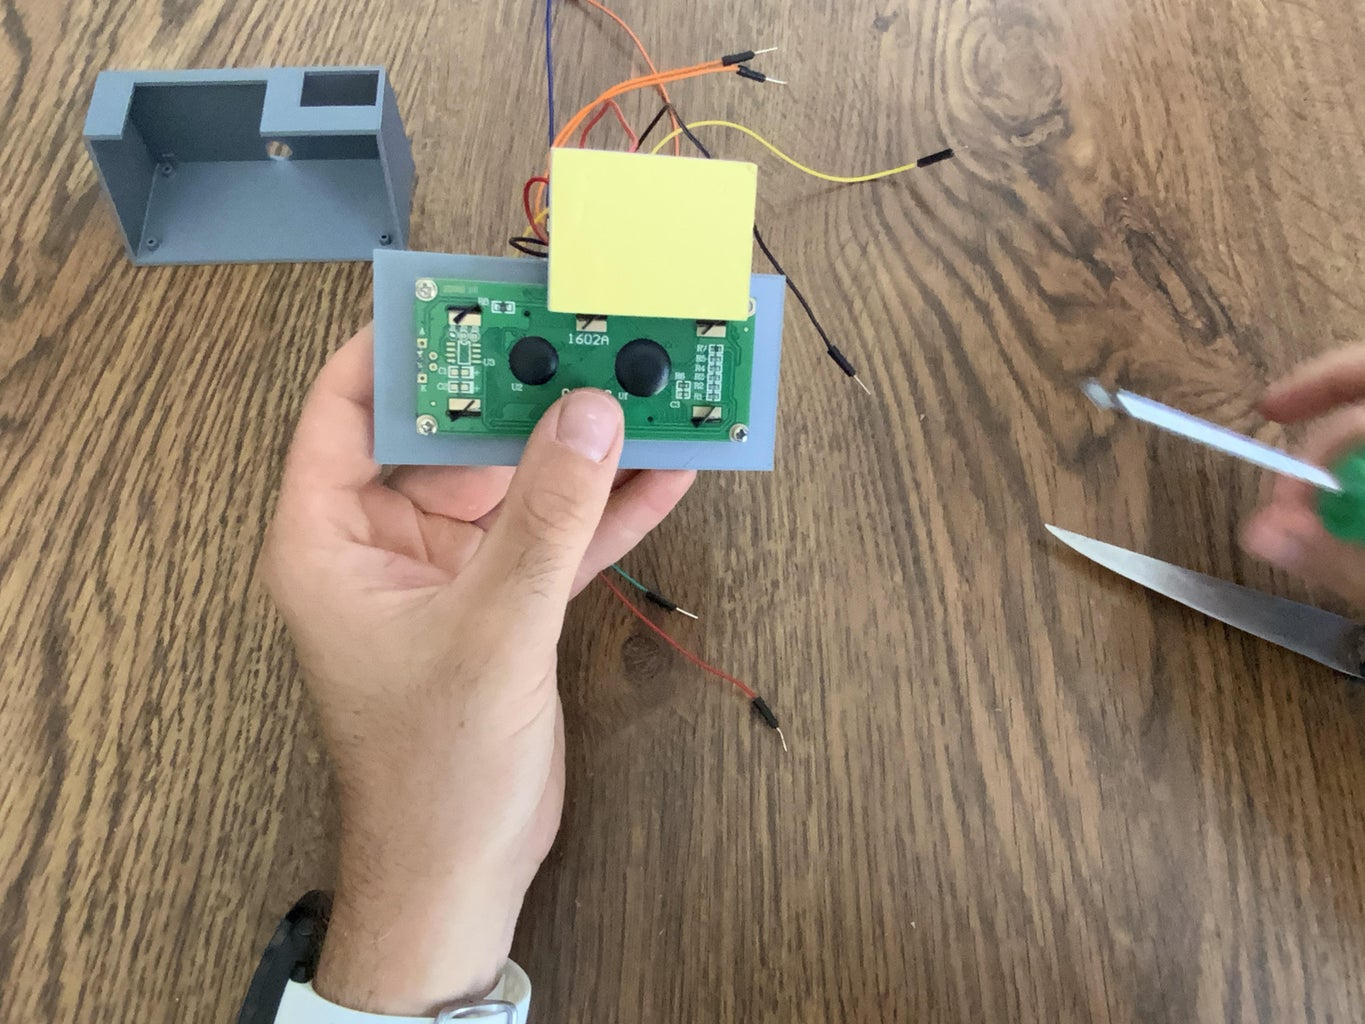 Assembling and Connecting the Circuit